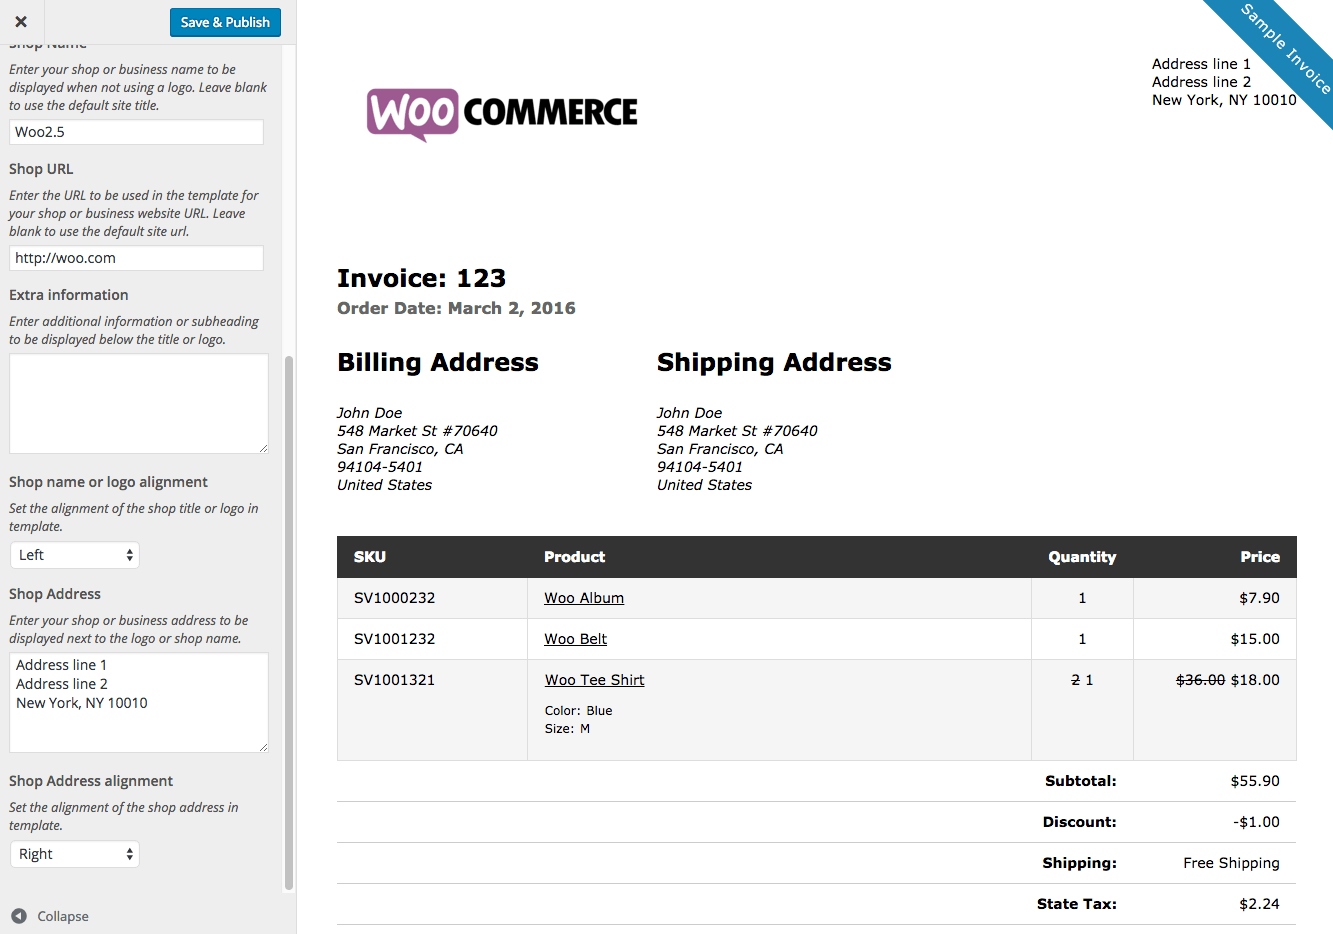 Modaoxus  Pleasant Woocommerce Print Invoices Amp Packing Lists  Woocommerce Docs With Glamorous Woocommerce Print Invoices  Packing Lists Customizer With Archaic Invoice Template Free Uk Also Sample Of A Proforma Invoice In Addition Software To Create Invoices And Web Invoice Template As Well As Overdue Invoice Notice Additionally Free Billing Invoice Templates From Docswoocommercecom With Modaoxus  Glamorous Woocommerce Print Invoices Amp Packing Lists  Woocommerce Docs With Archaic Woocommerce Print Invoices  Packing Lists Customizer And Pleasant Invoice Template Free Uk Also Sample Of A Proforma Invoice In Addition Software To Create Invoices From Docswoocommercecom